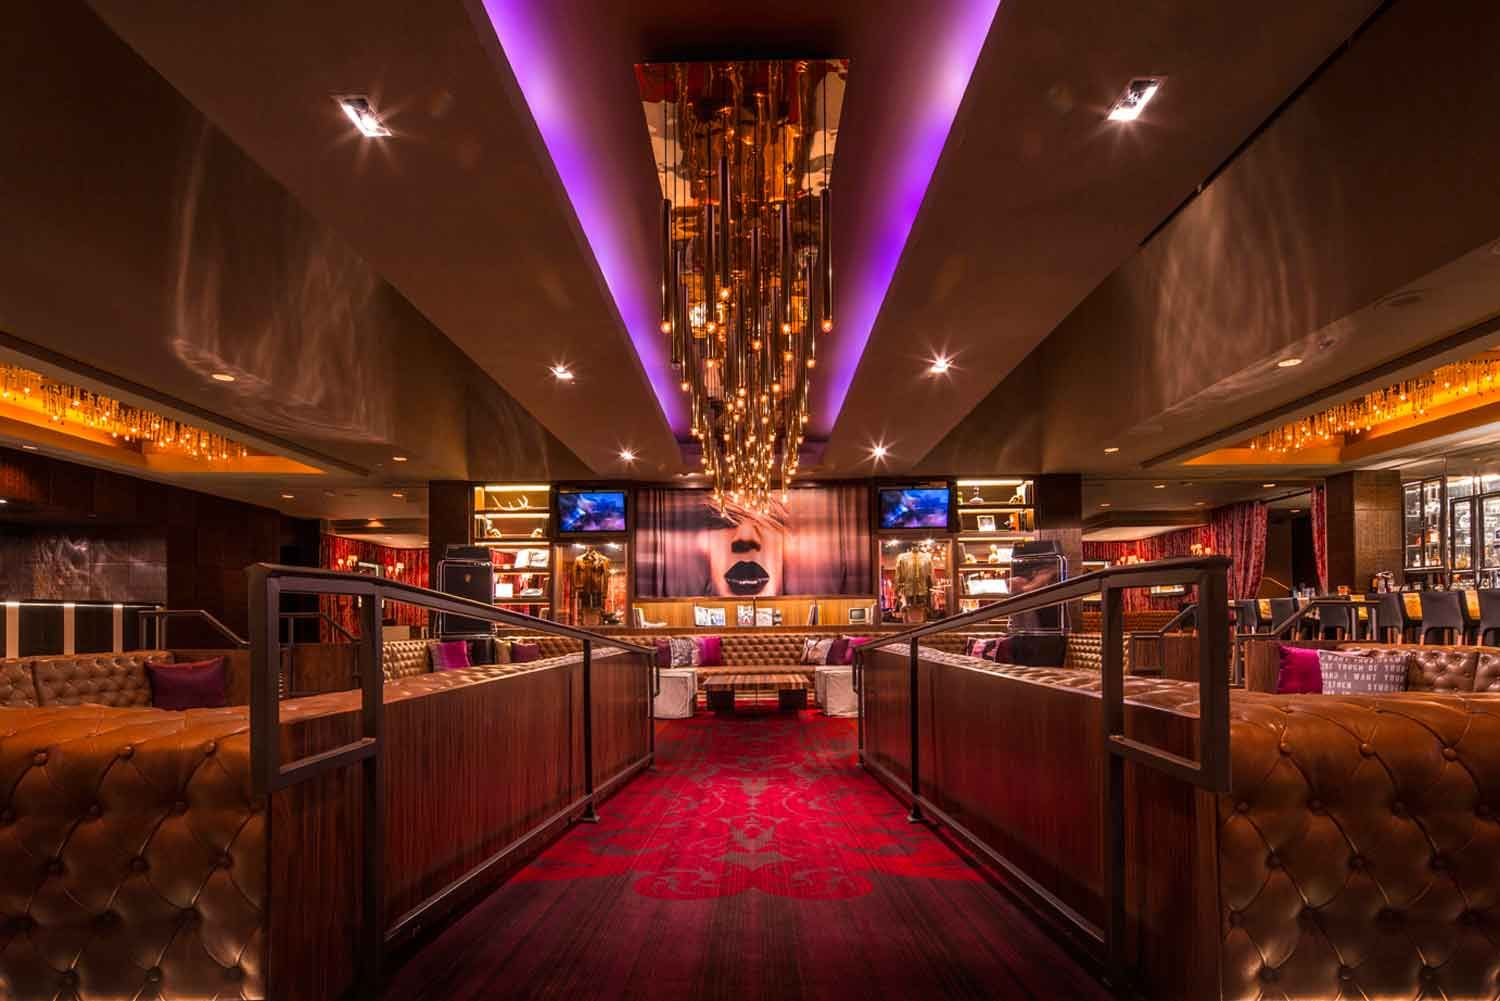 Into the sunken living room at the hard rock hotel palm springs interior design by mister important design